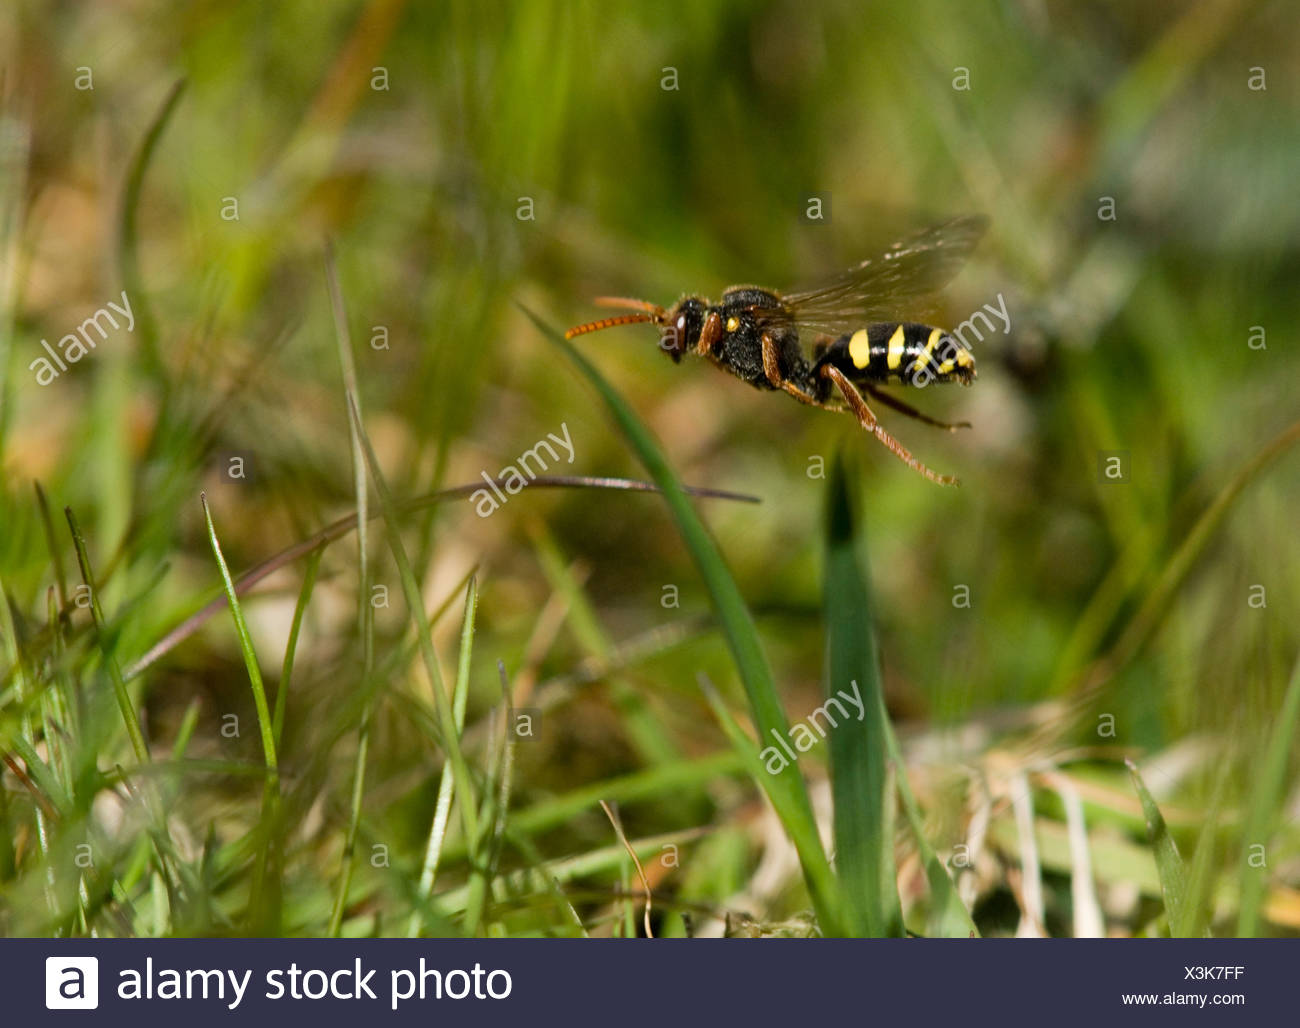 Hymenopteran flying over the grass, Sweden. - Stock Image